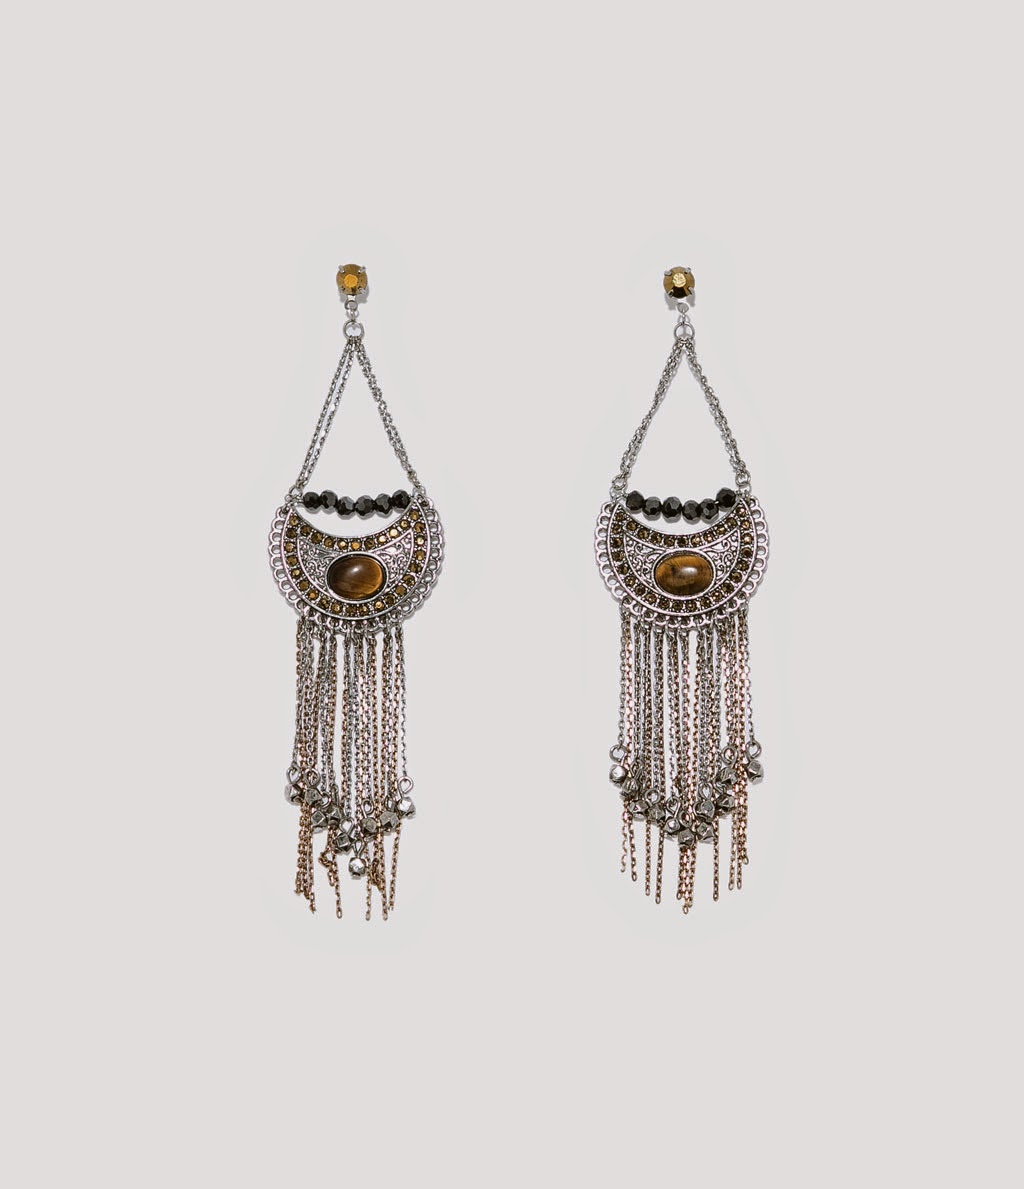 zara earrrings, zara ethnic earrings,